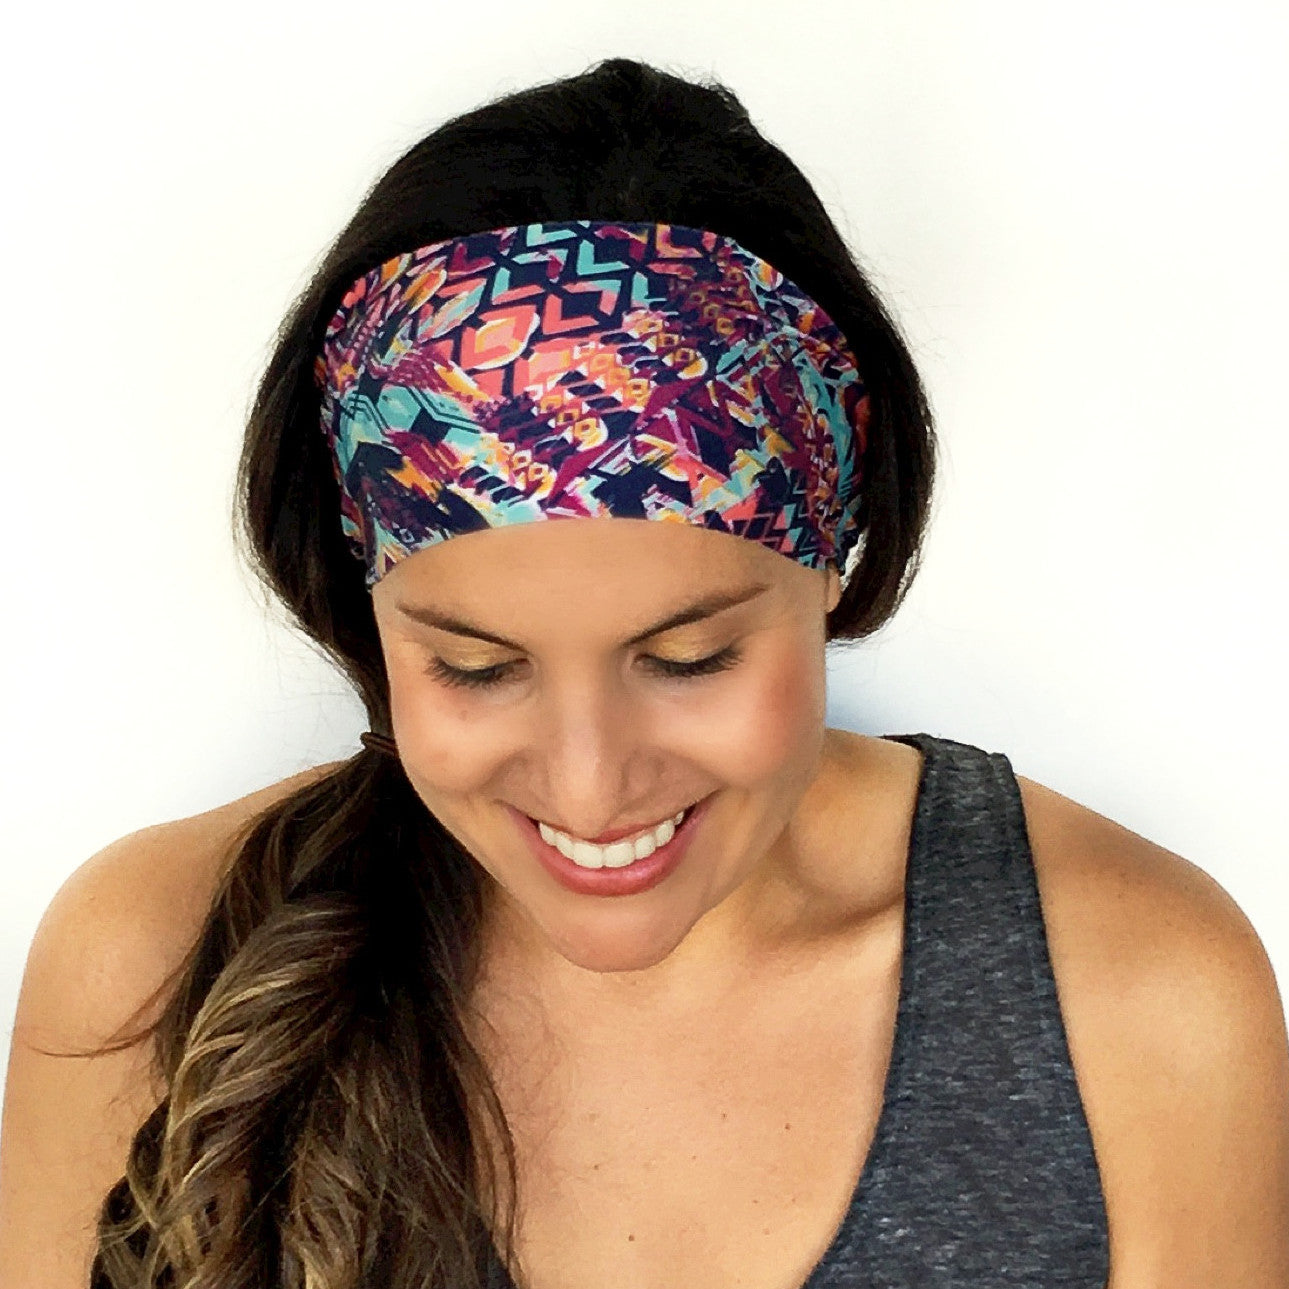 Bali Print Workout Headband Alt view